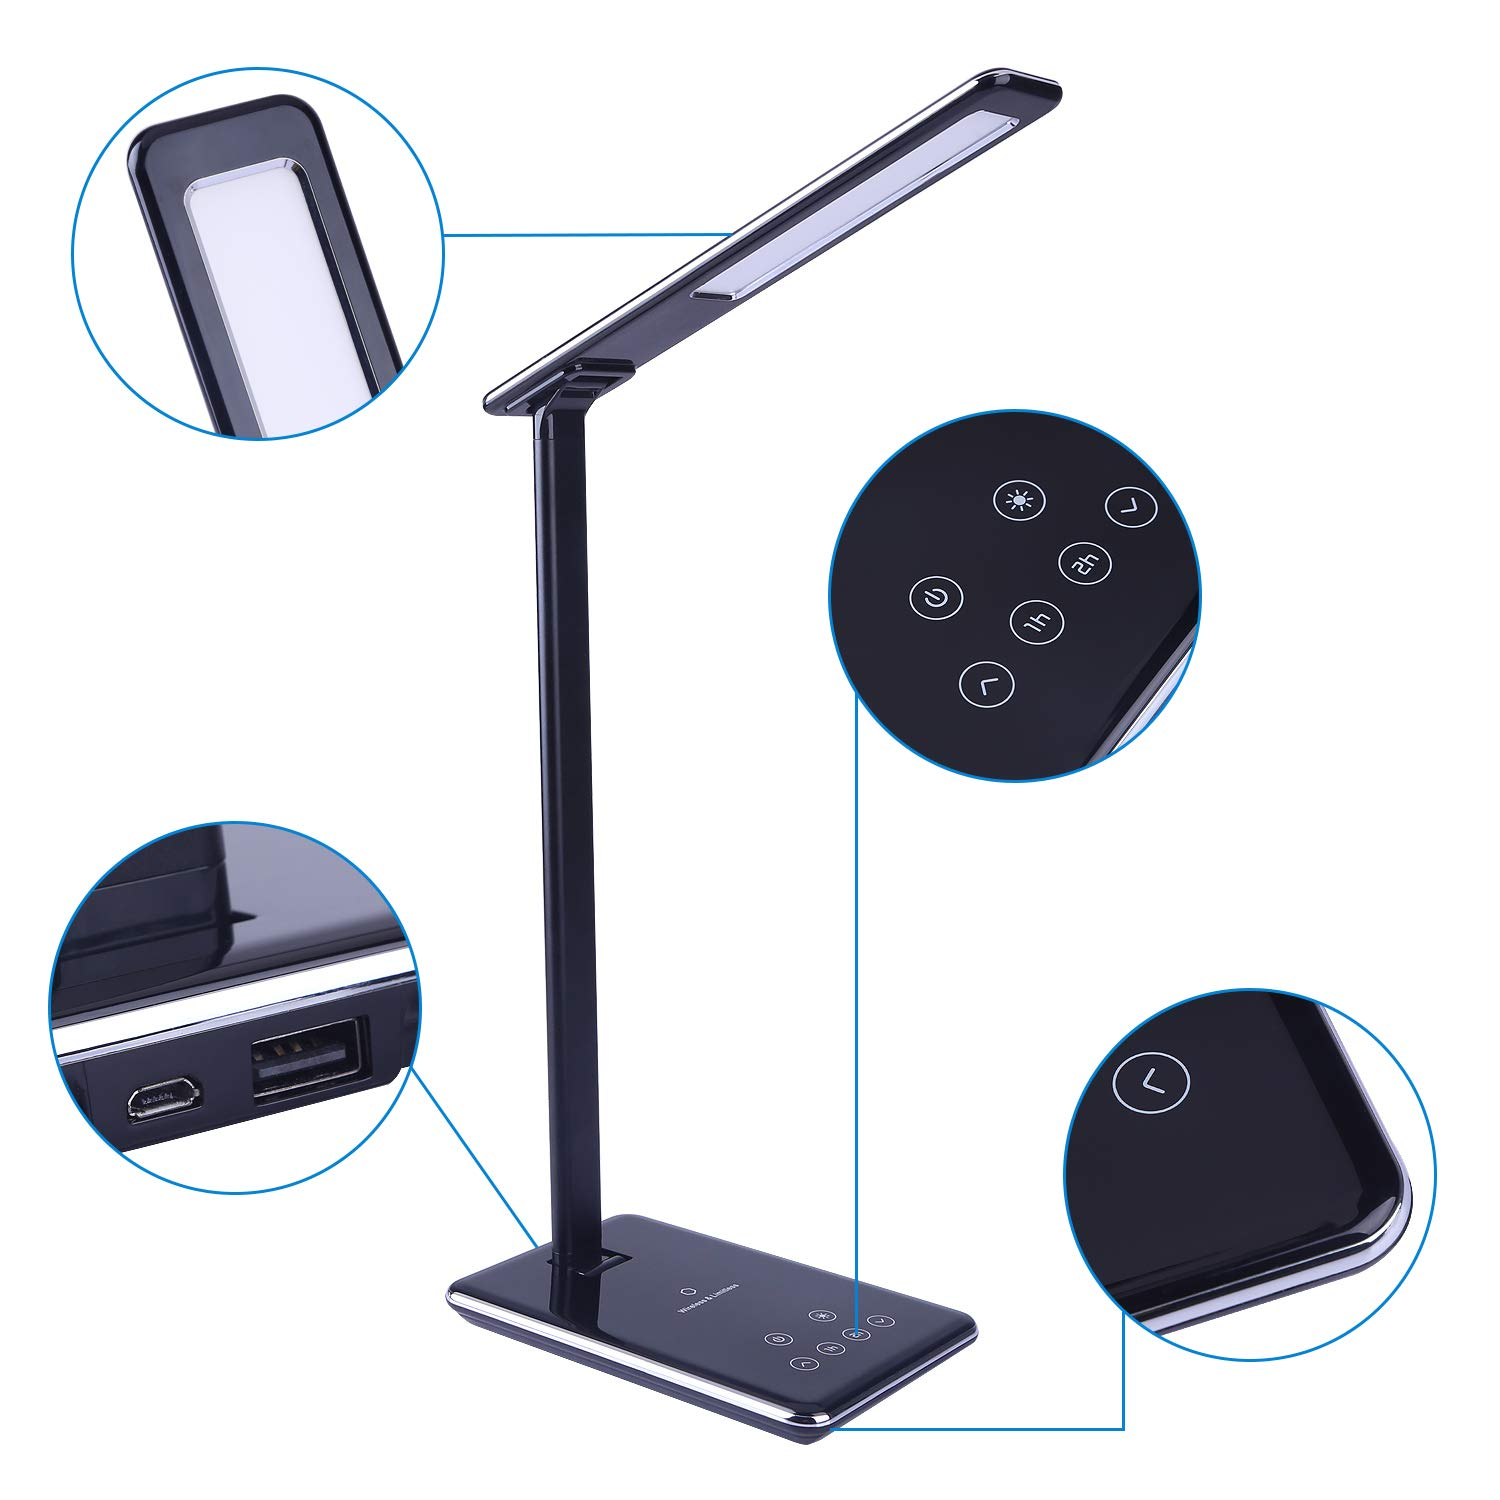 Folding LED Desk Lamp,USB Charging Port and Wireless Charging 1//2h Timer Table Lamp Smart Touch Eye-Caring Automatic Timing 4 Lighting Modes and 5 Level Brightness Night Light